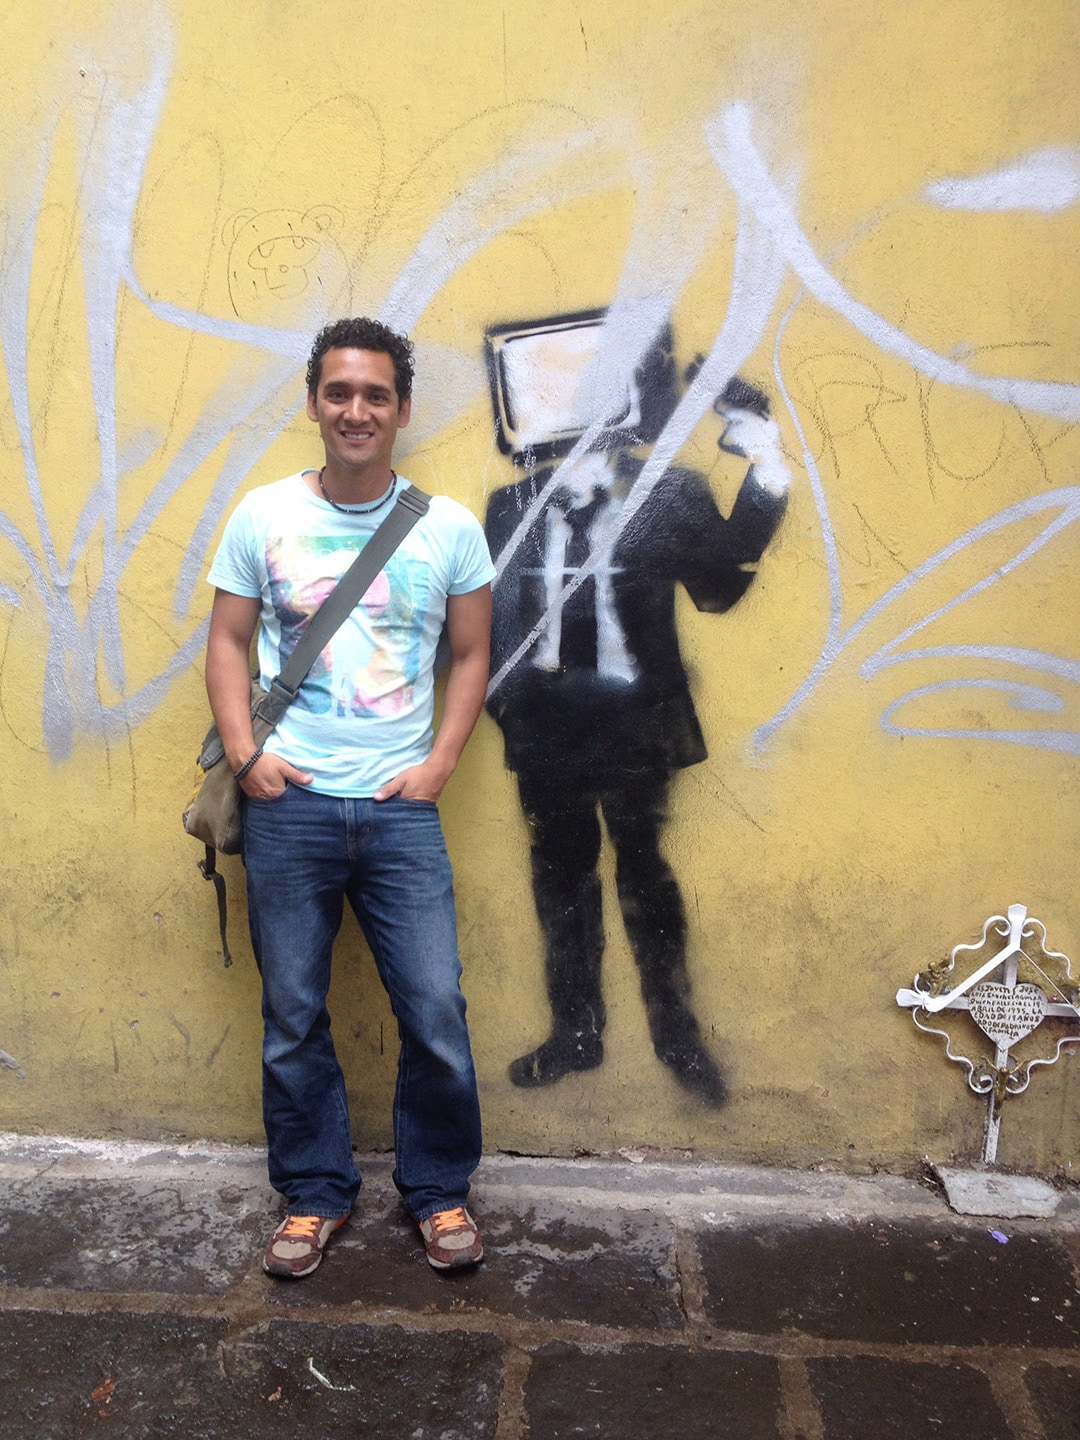 Hi! My name is Victor. I am an avid traveler that